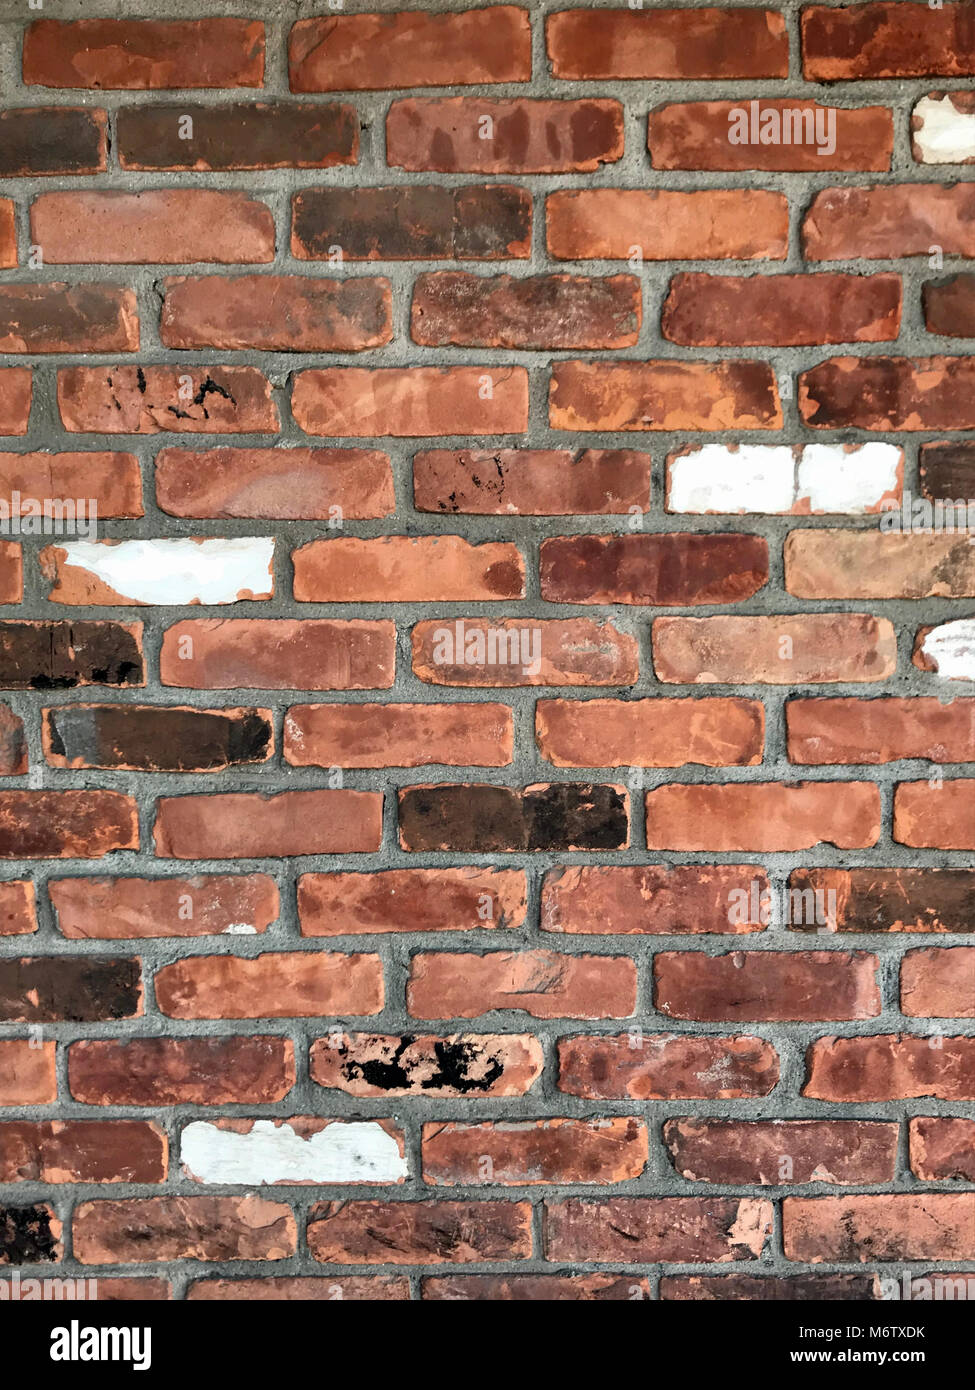 Painted Red Cinder Block Wall High Resolution Stock Photography And Images Alamy